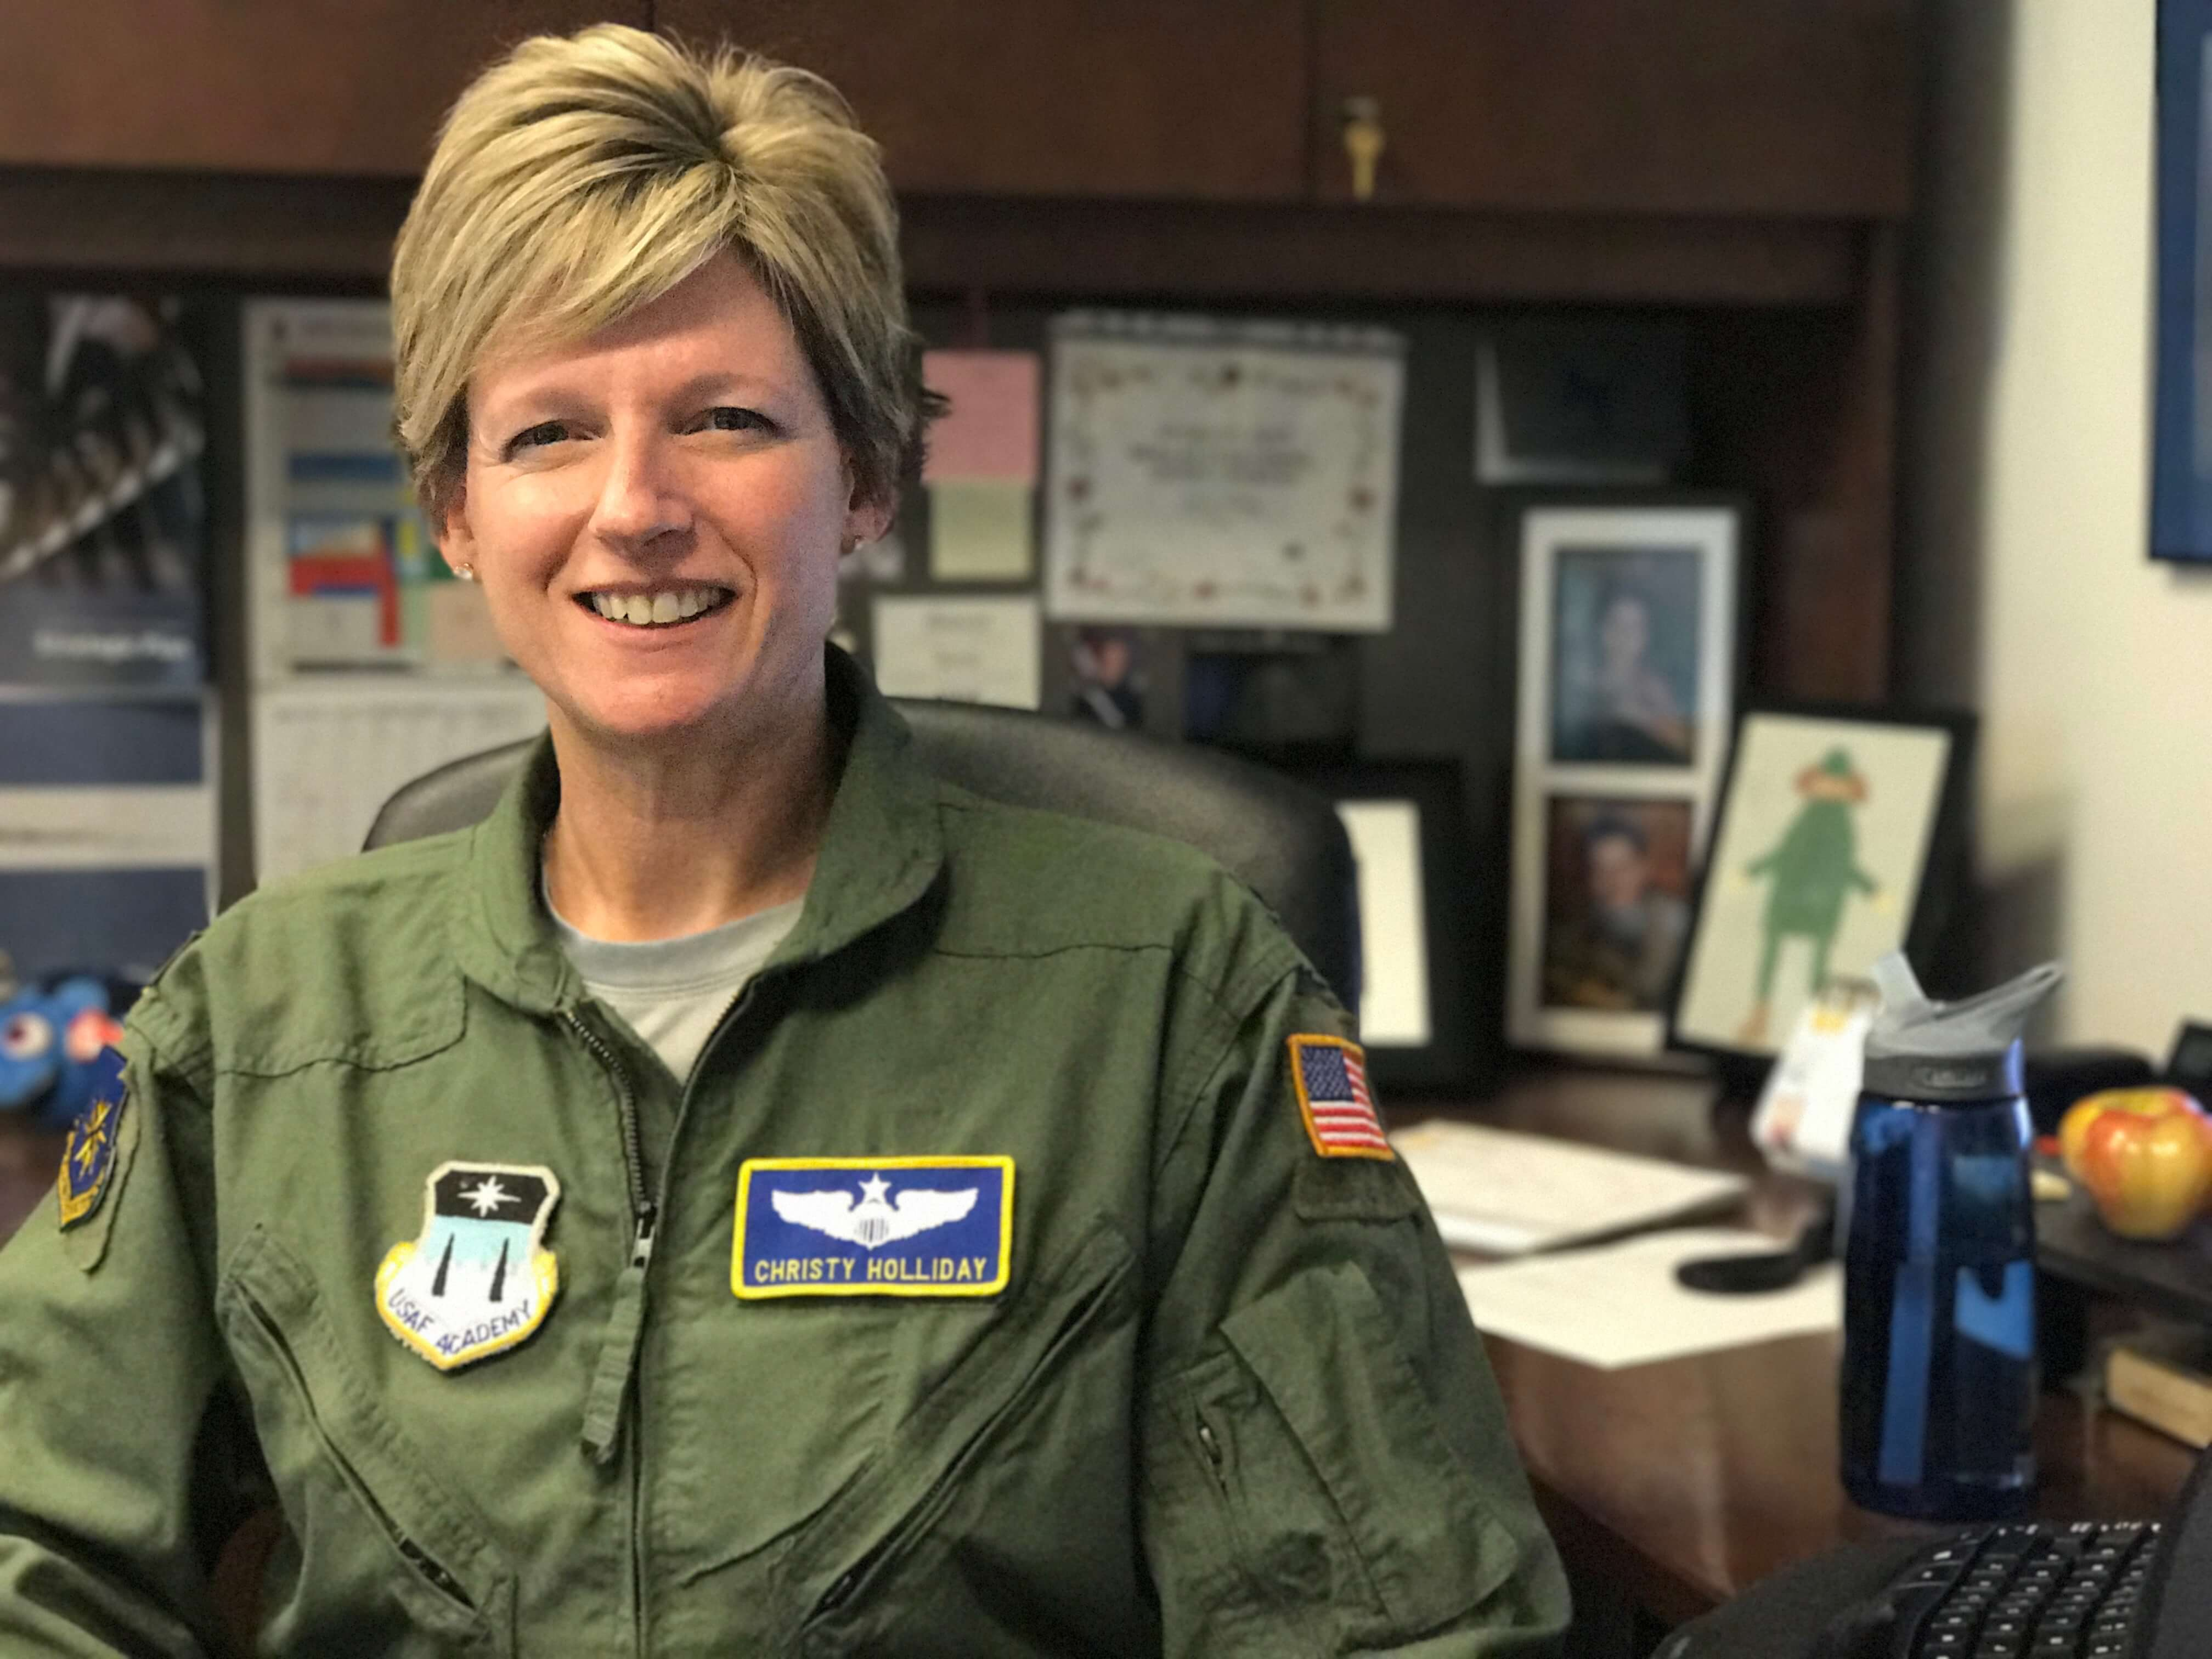 Col. Christine Holliday